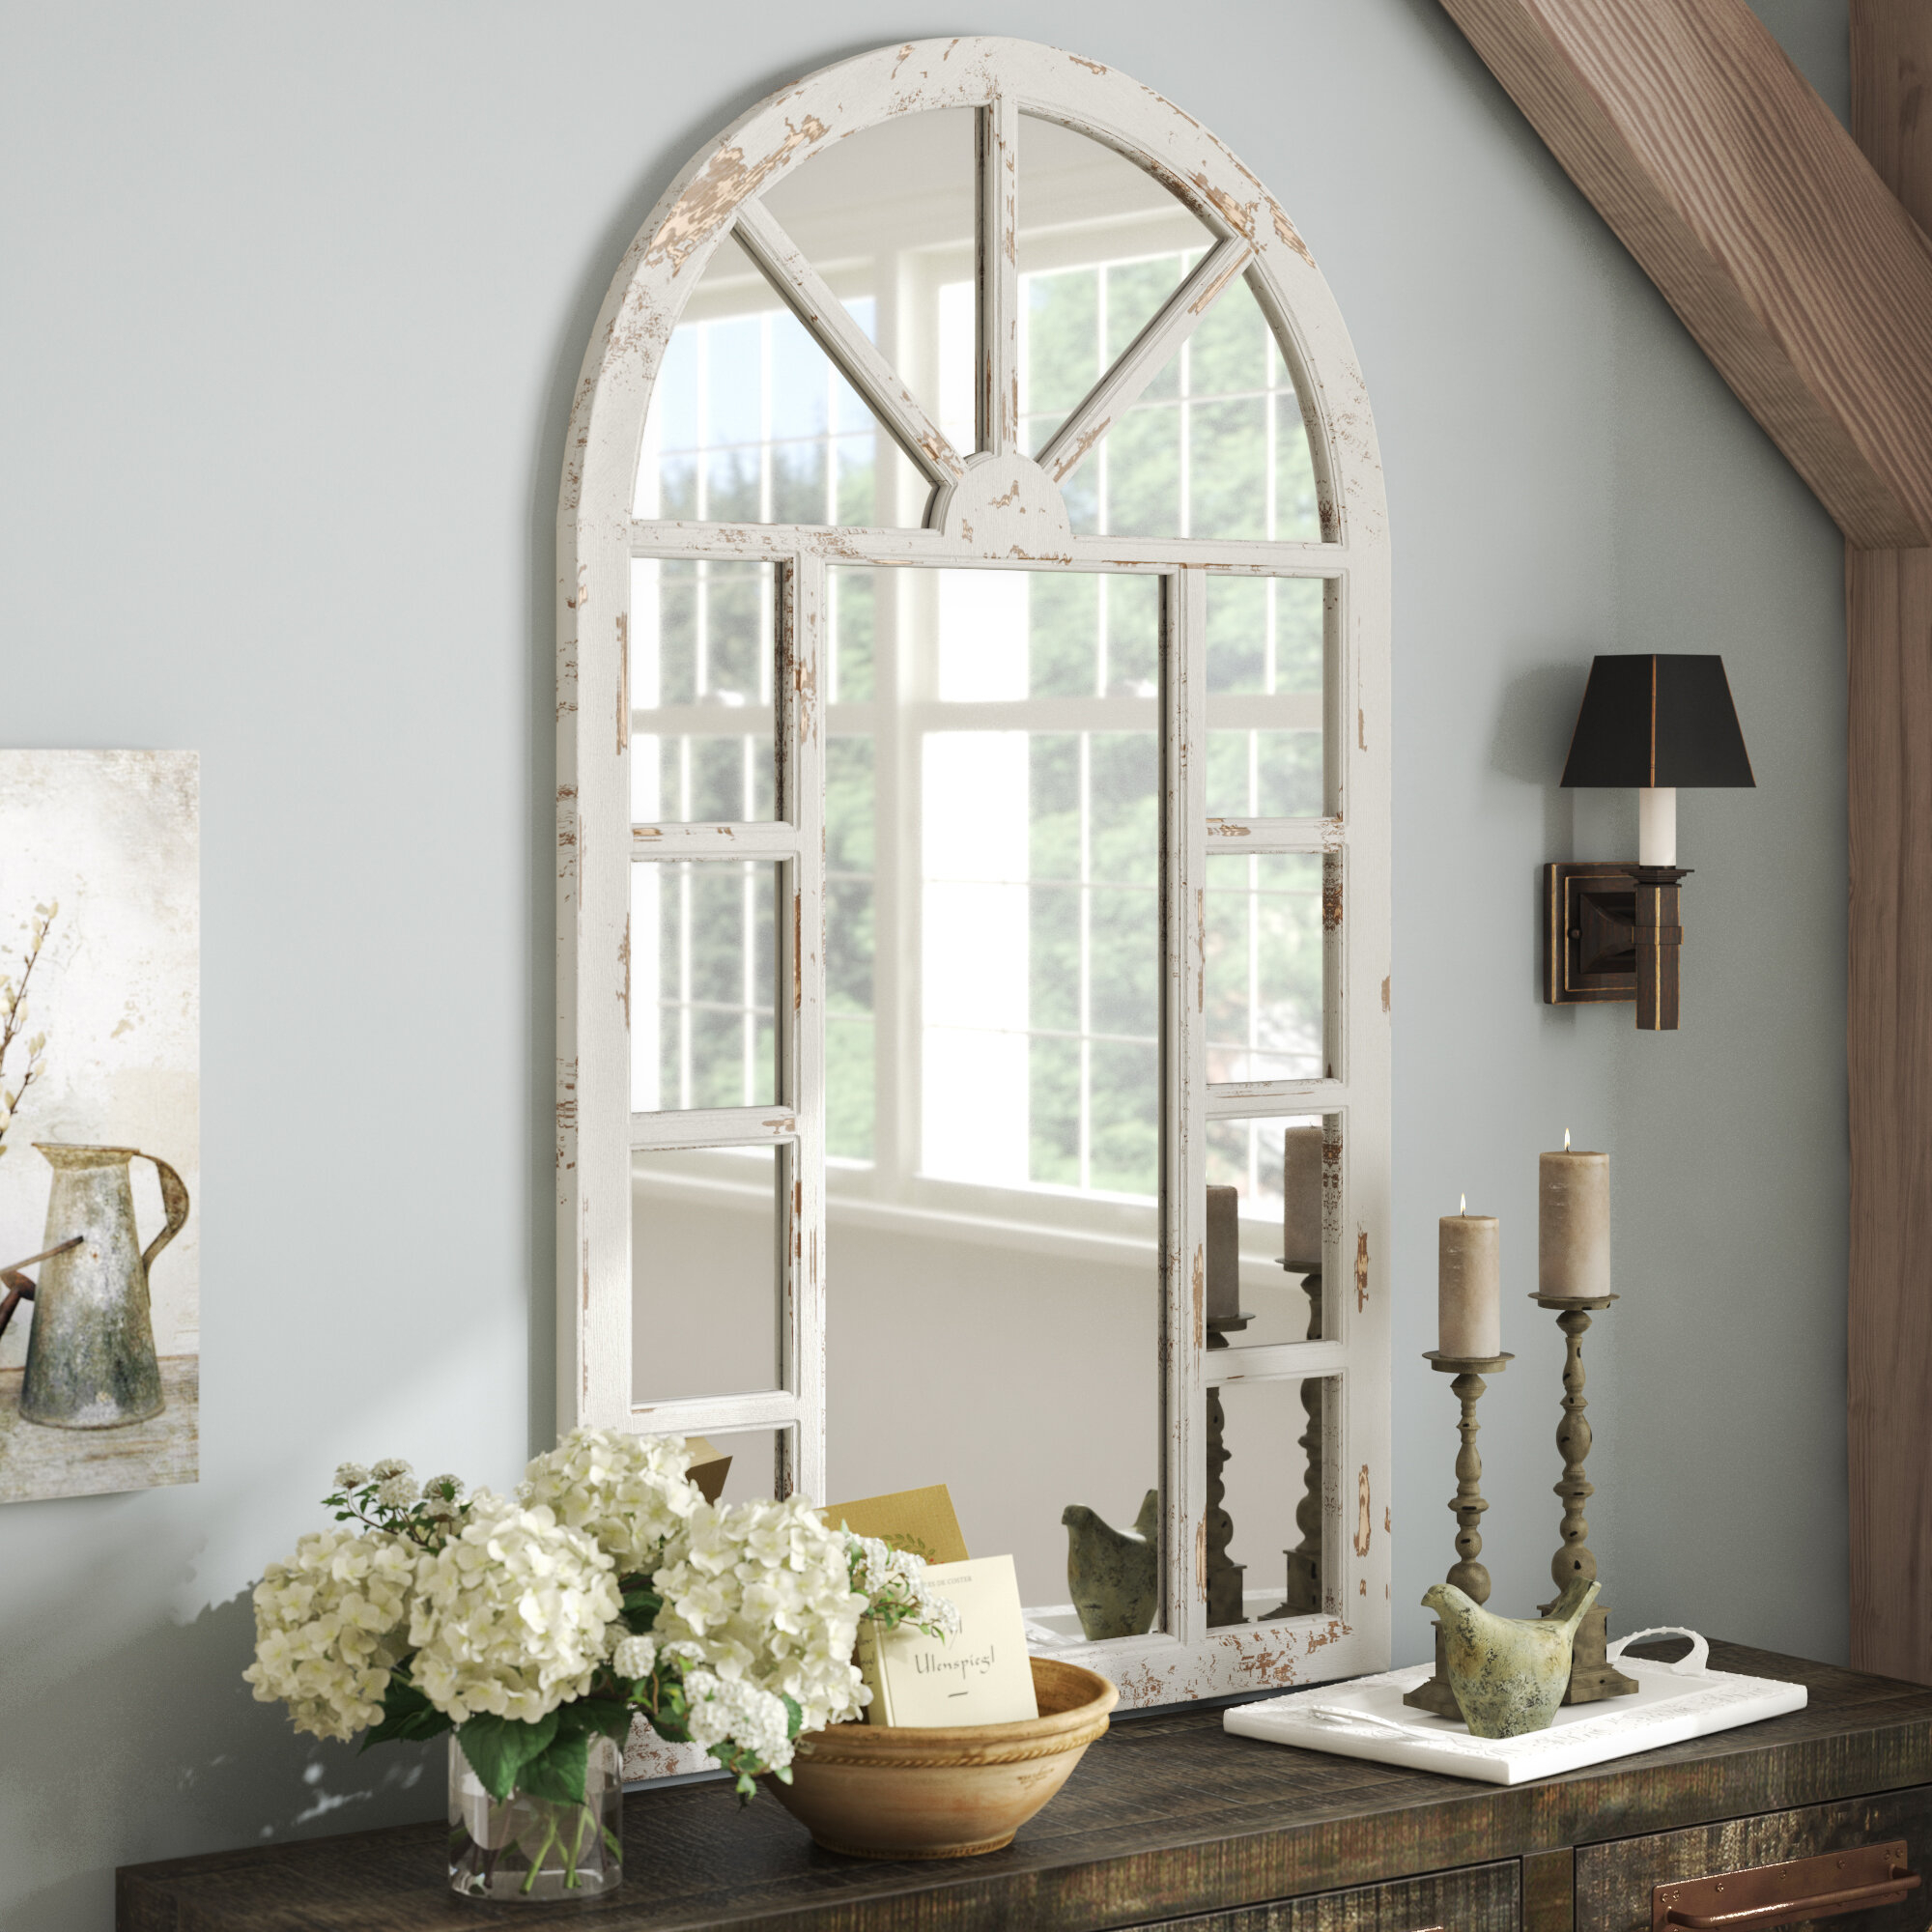 Gracie Oaks Radley Accent Mirror & Reviews | Wayfair With Regard To Romain Accent Mirrors (Image 10 of 20)